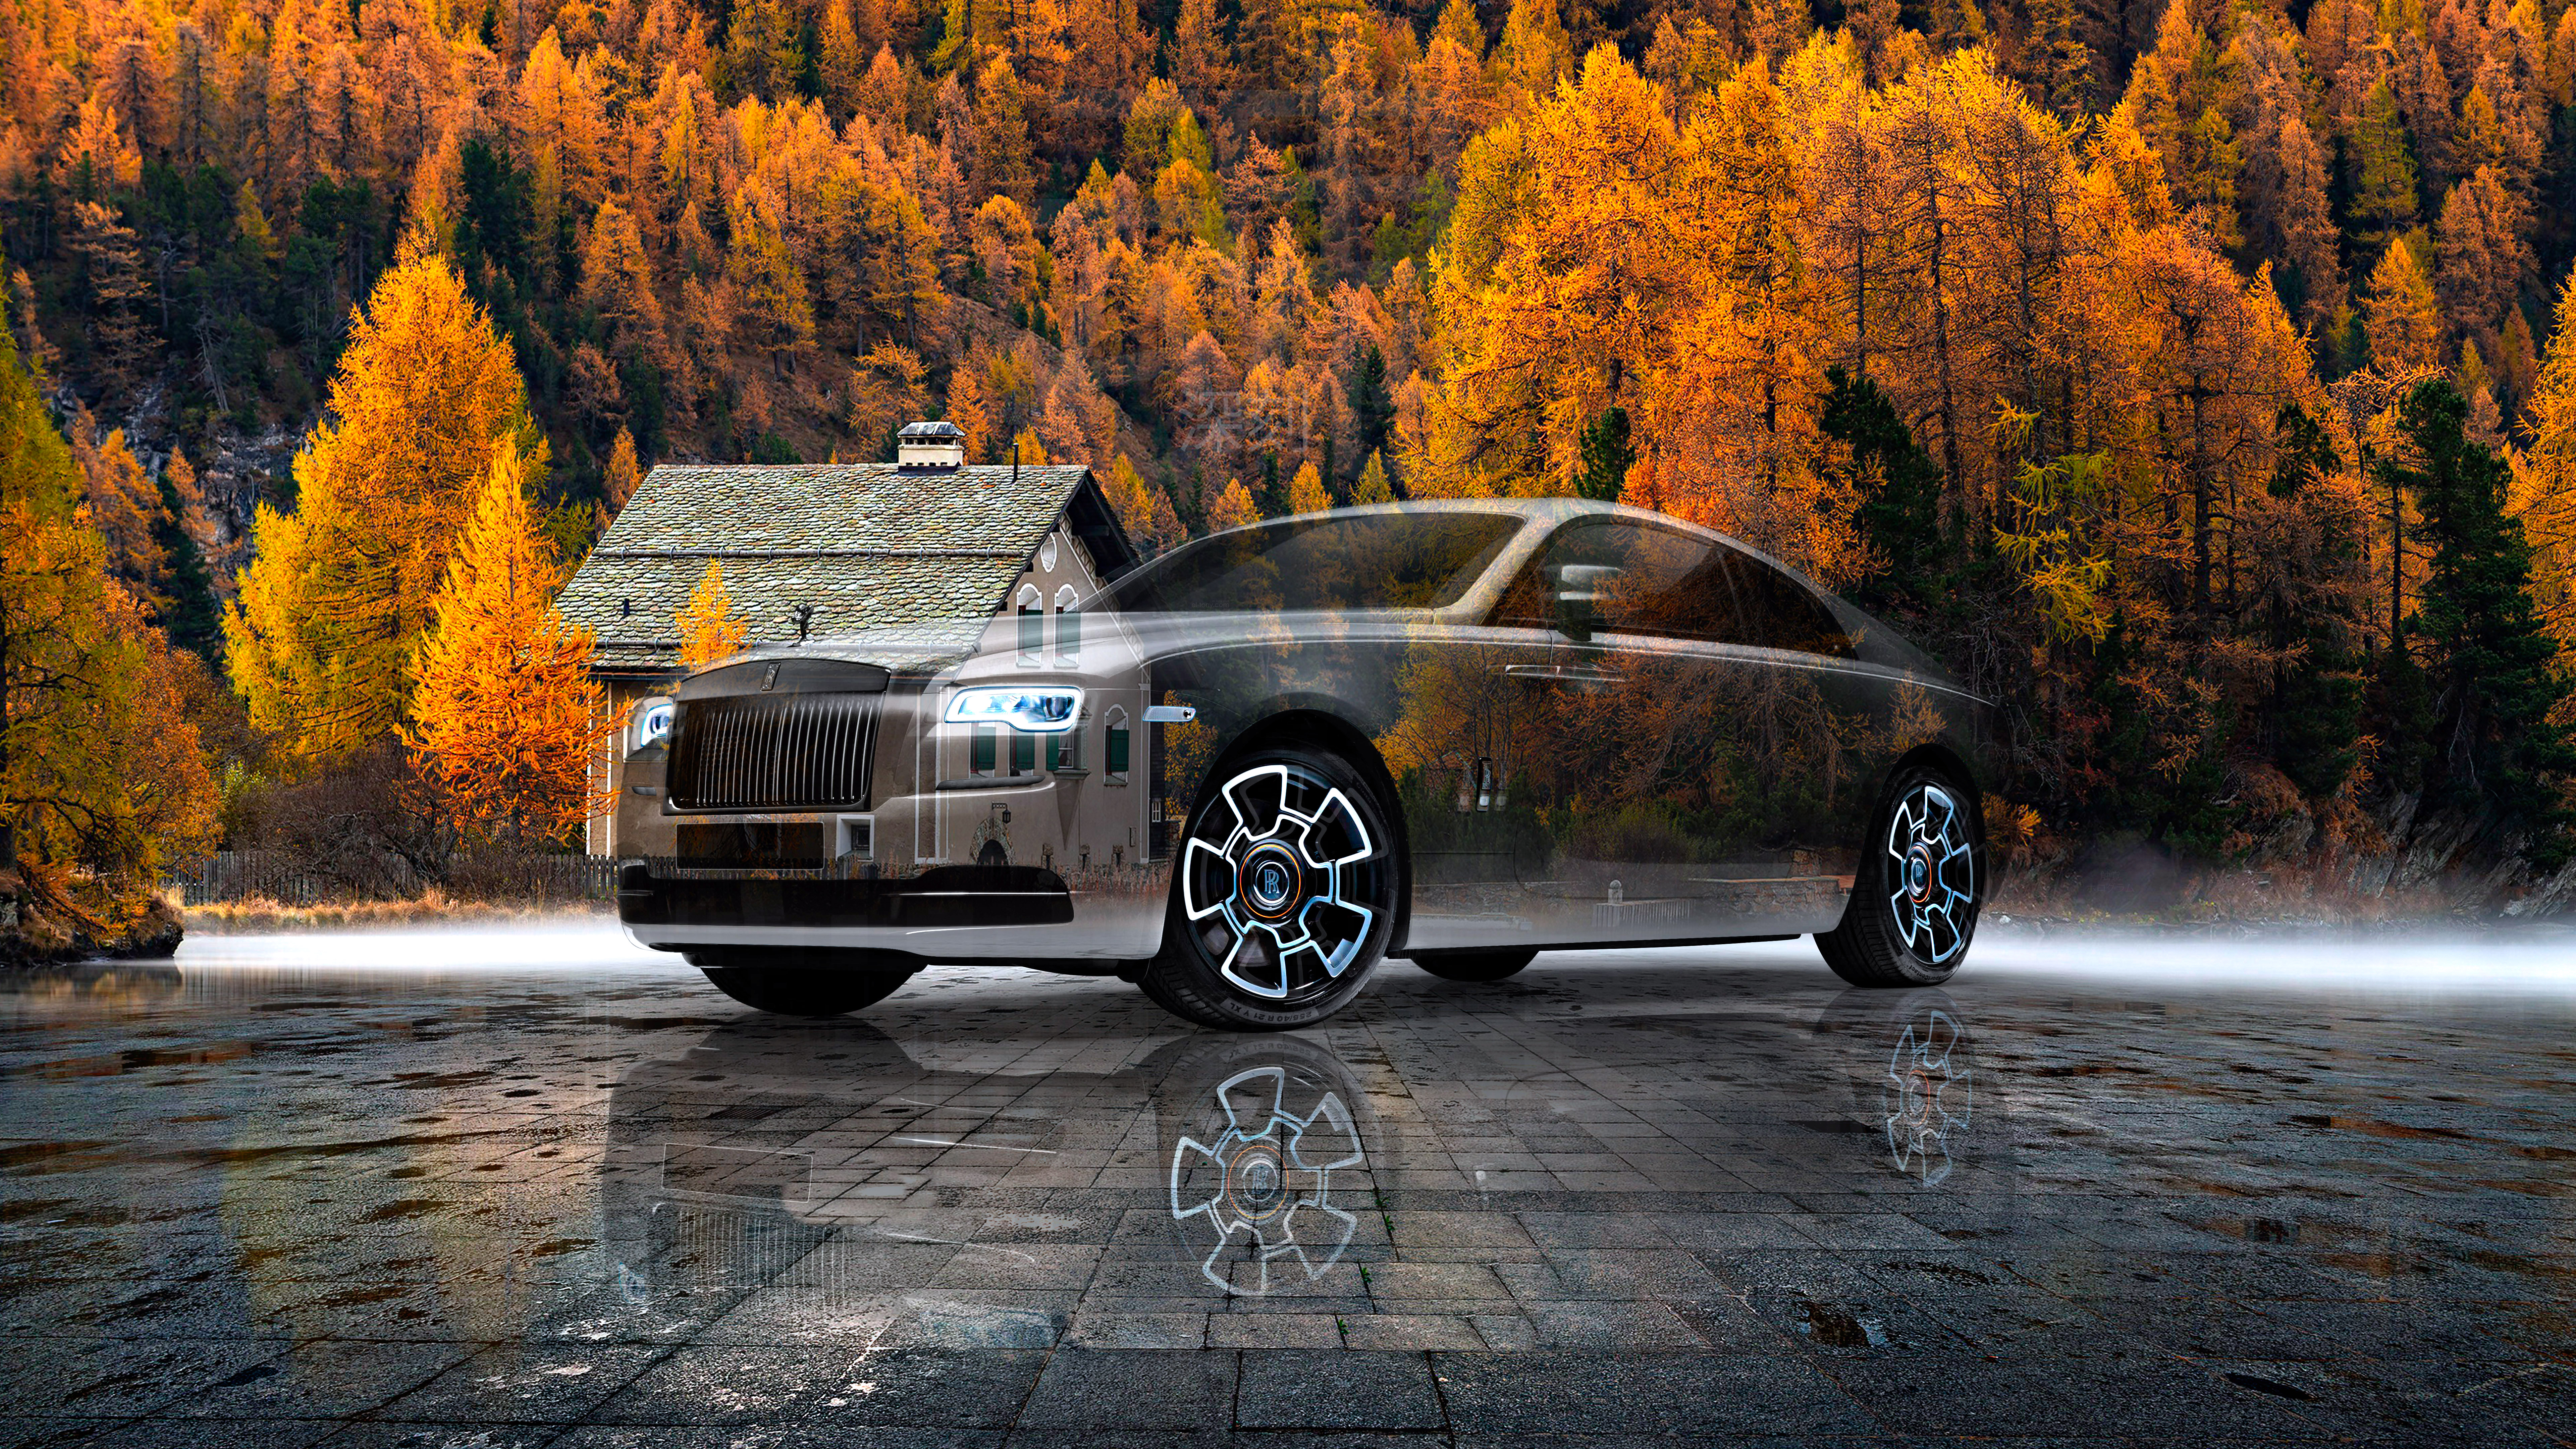 Rolls-Royce-Wraith-Super-Crystal-Serious-Soul-Autumn-Forest-Home-Tactile-Hologram-Art-Car-2021-Multicolors-8K-Wallpapers-by-Tony-Kokhan-www.el-tony.com-image